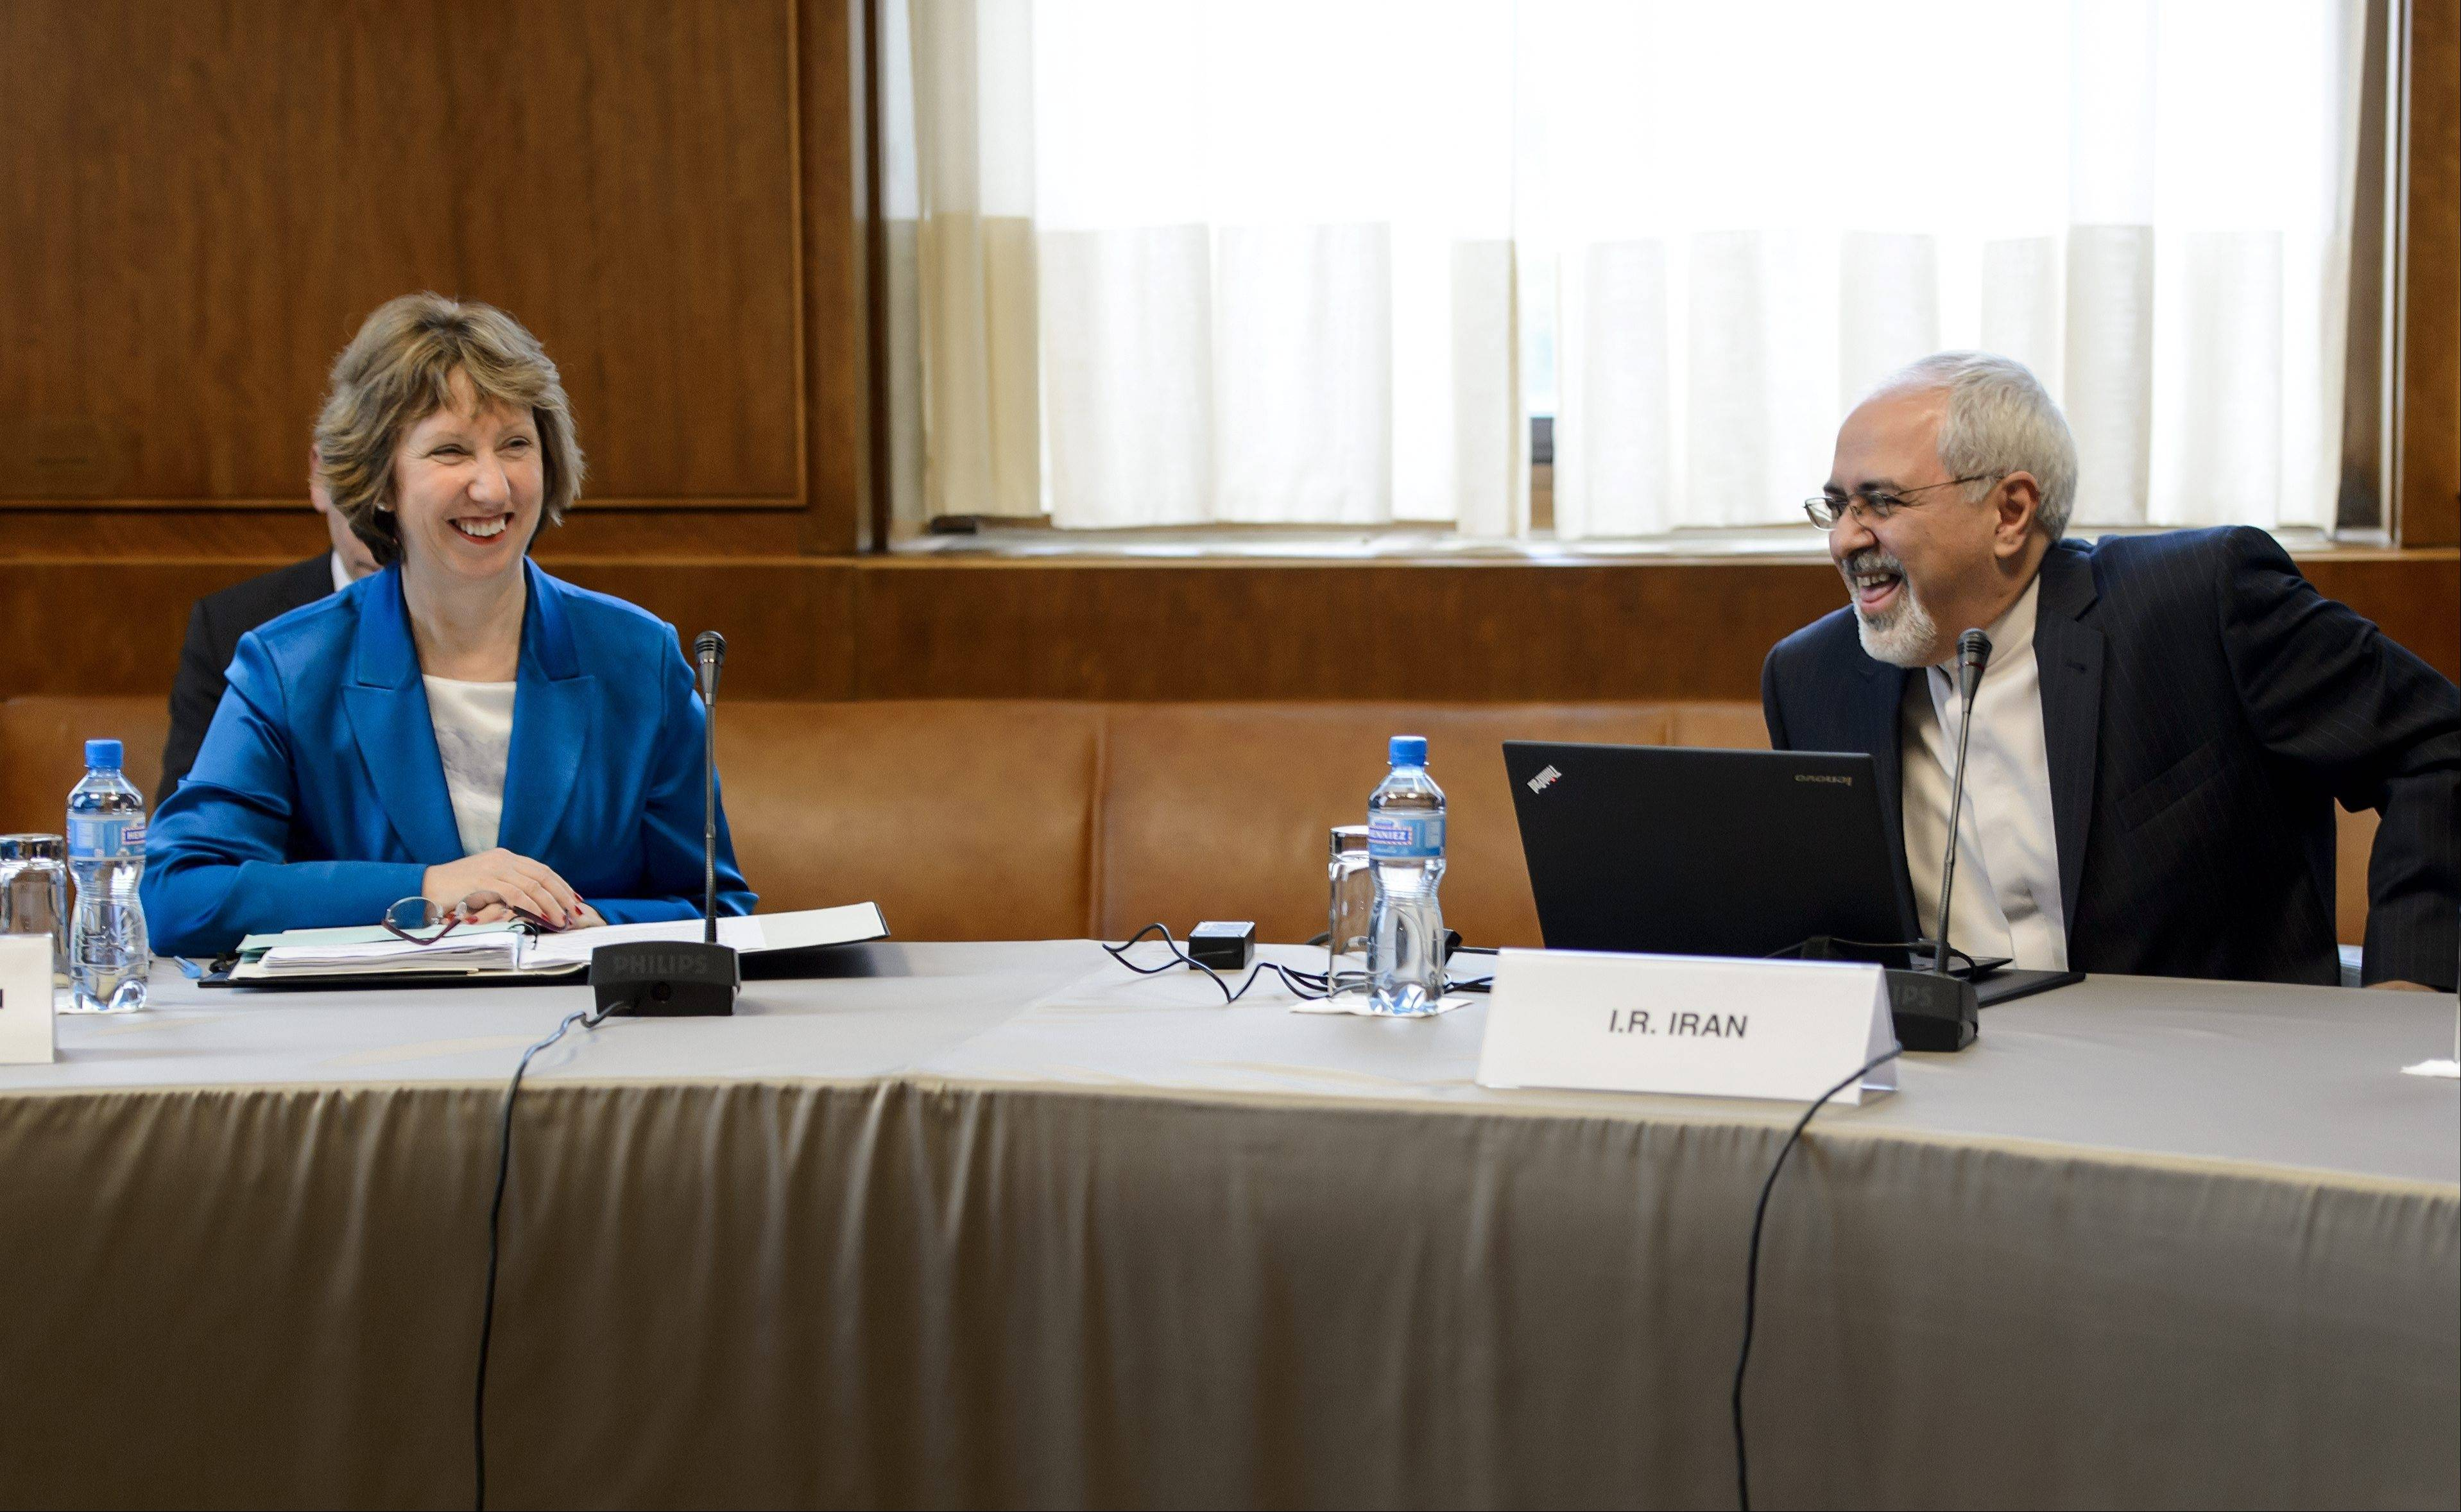 EU High Representative for Foreign Affairs Catherine Ashton, left, and Iranian Foreign Minister Mohammad Javad Zarif share a light moment at the start of the two days of closed-door nuclear talks Tuesday at the United Nations offices in Geneva, Switzerland.